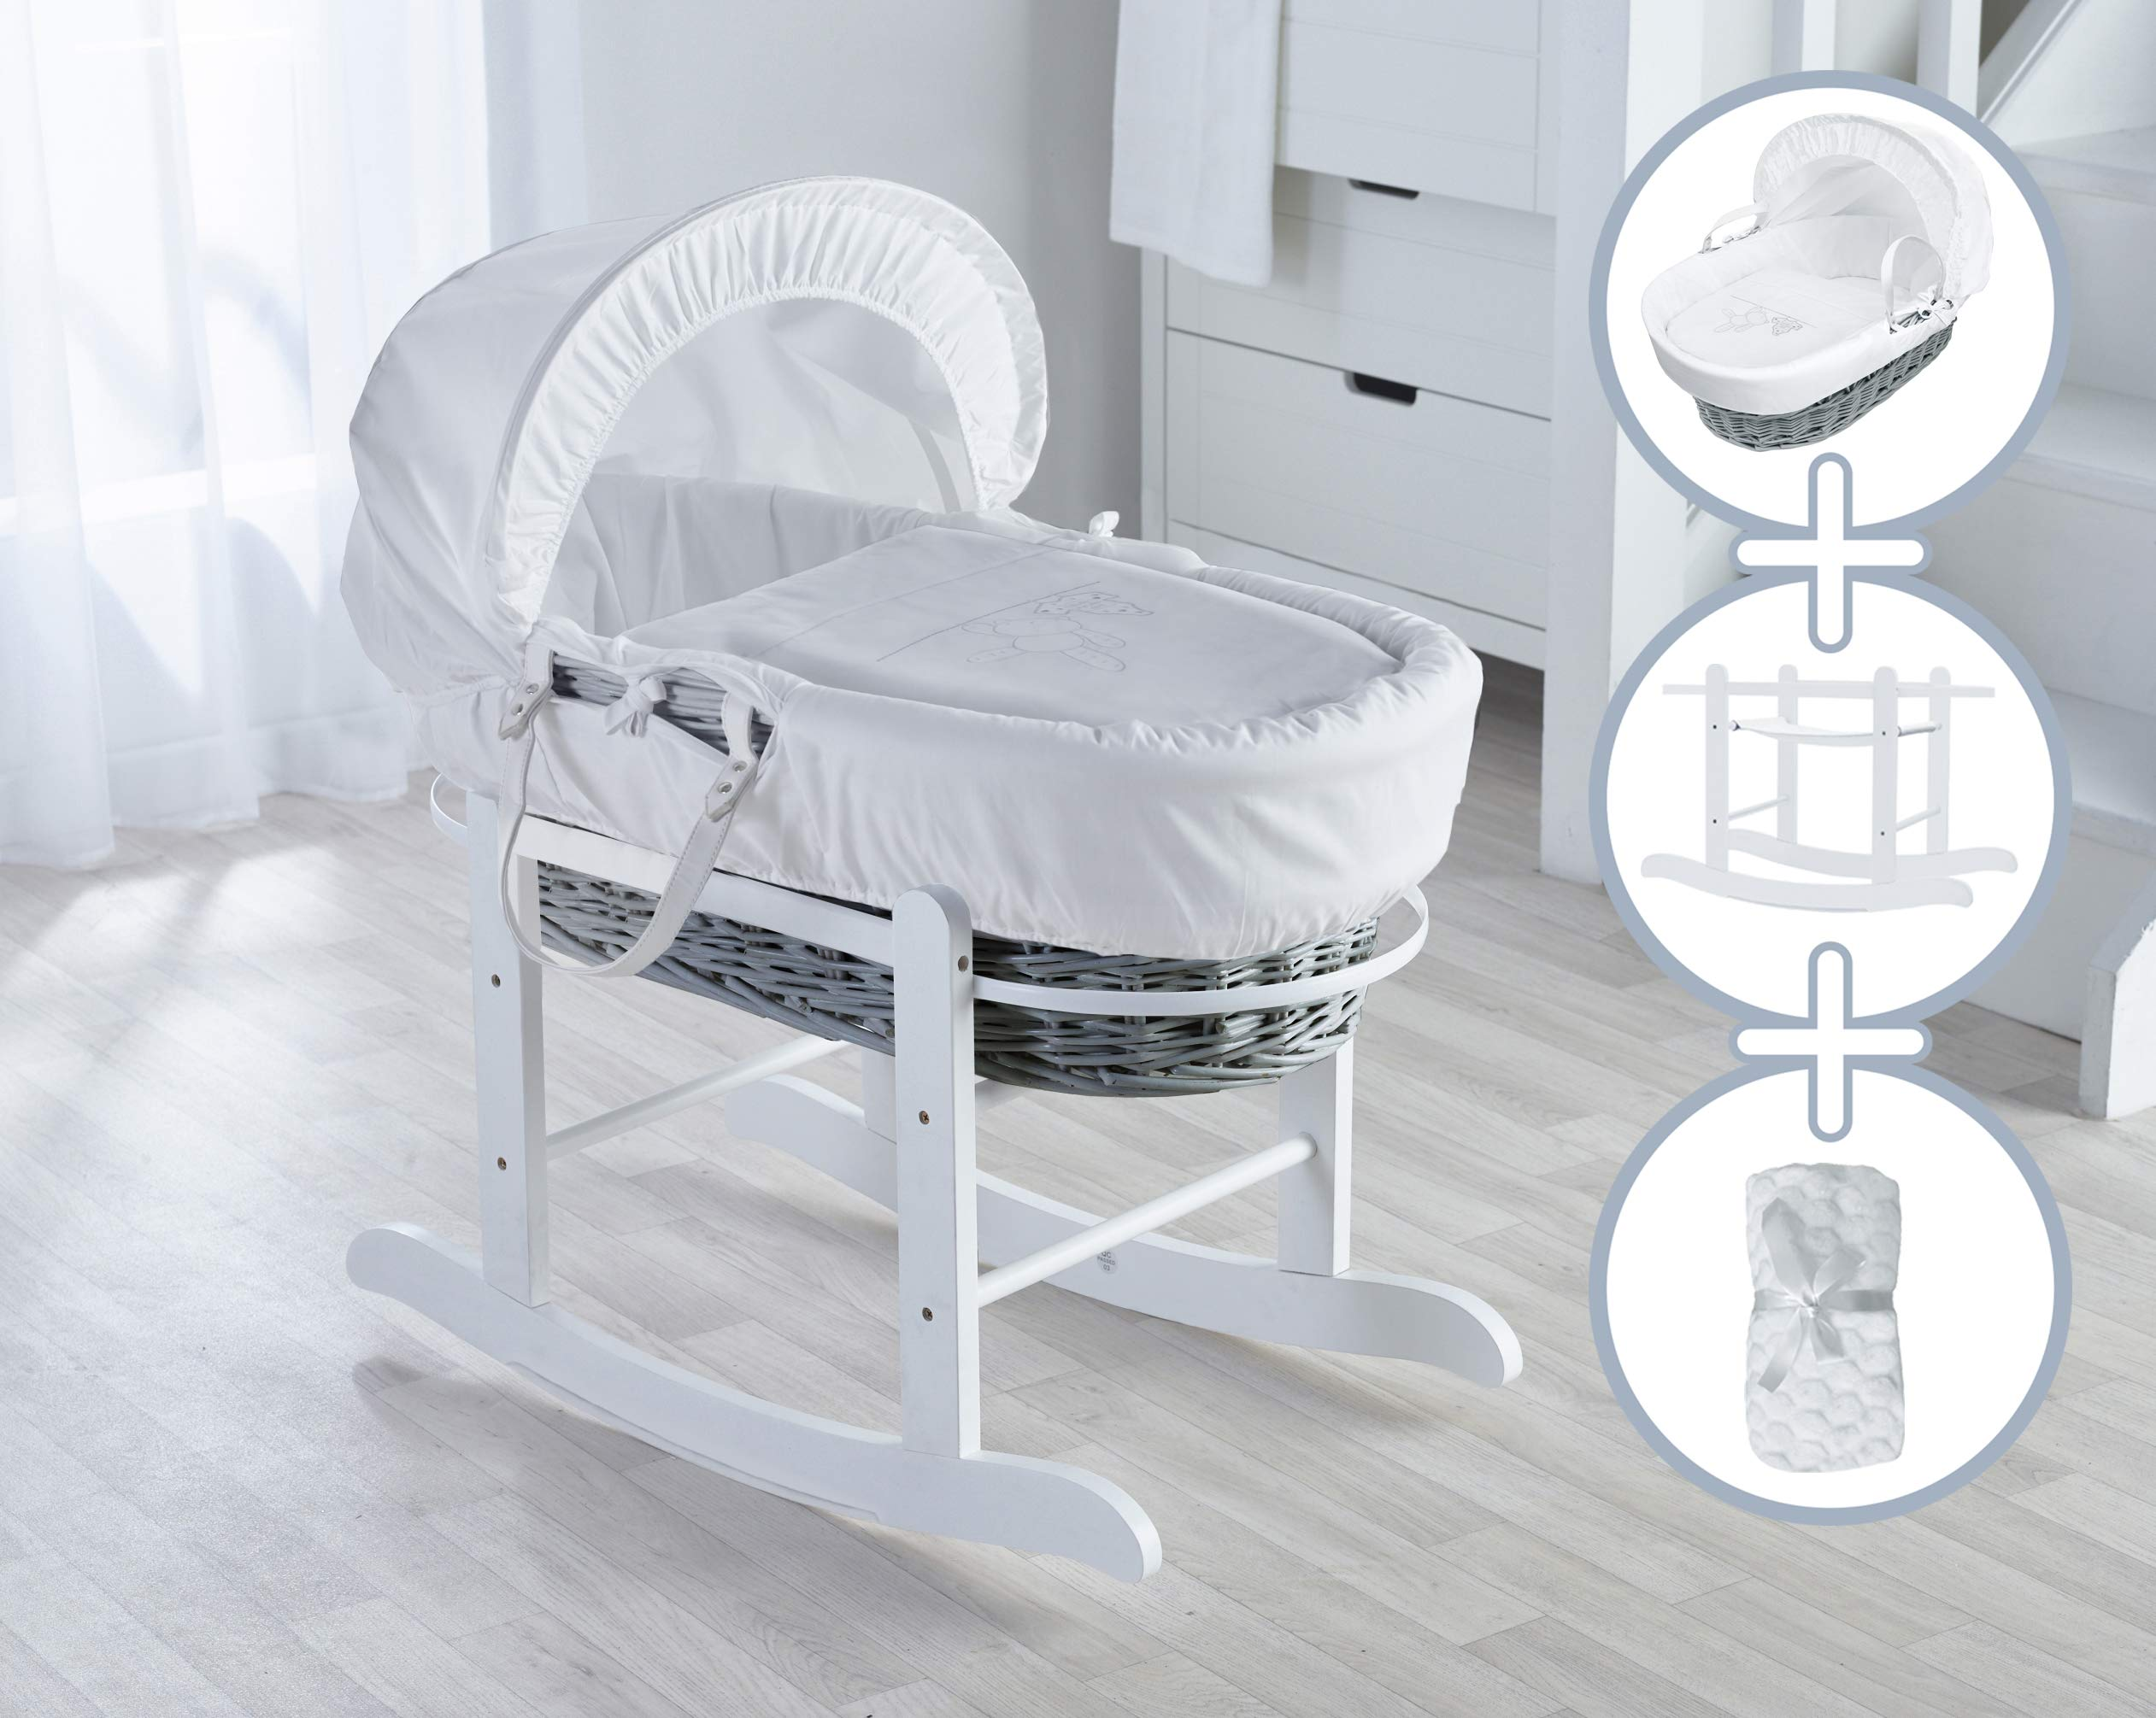 White Teddy Wash Day Moses Basket, Deluxe Rocking Stand and Honeycomb Blanket Bundle Deal Elegant Baby Stylish Elegant Baby Exclusive moses basket Opulent cotton blend fabric with a luxurious soft padded surround Baby Essentials Bundle containing hooded towel, fleece blanket and cellular blanket 1